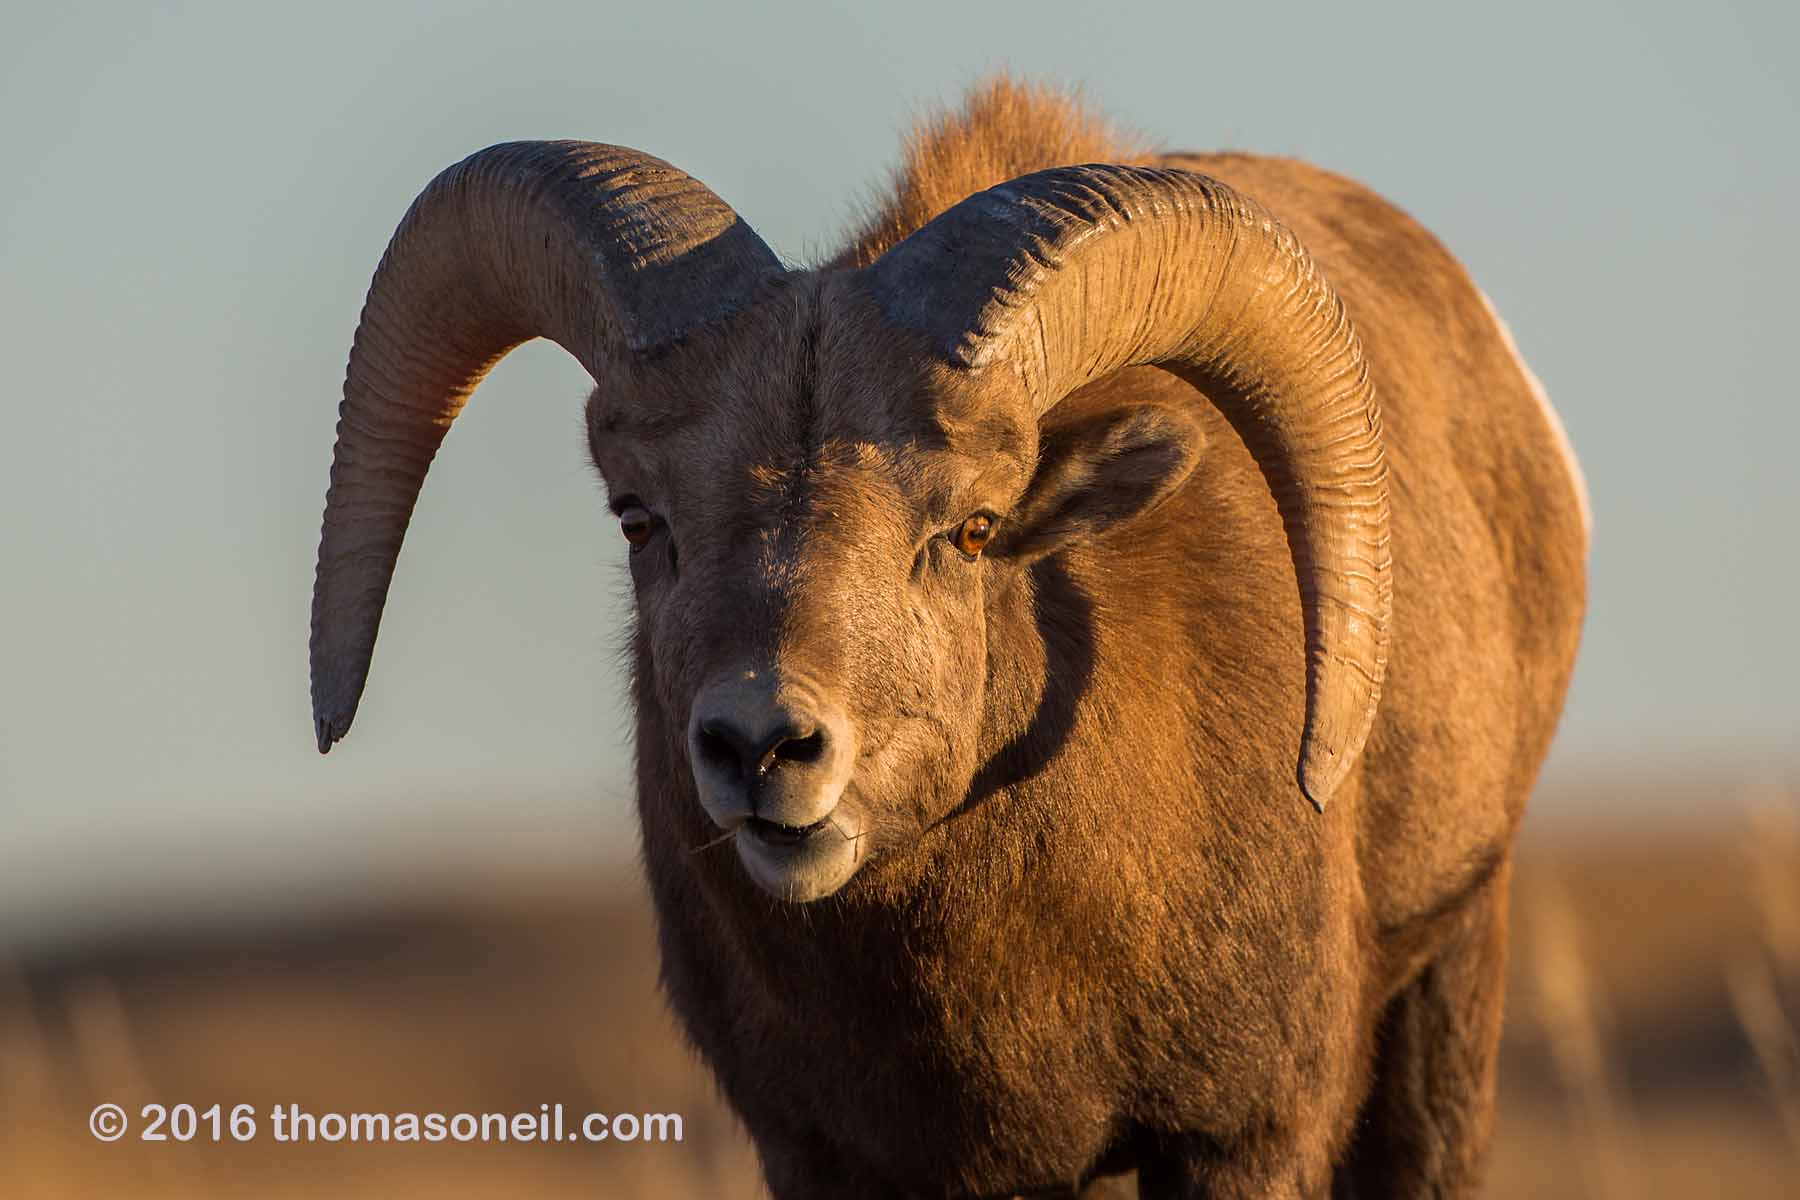 Bighorn with a wild look in his eye (see next image), Badlands National Park, 2016.  Click for next photo.